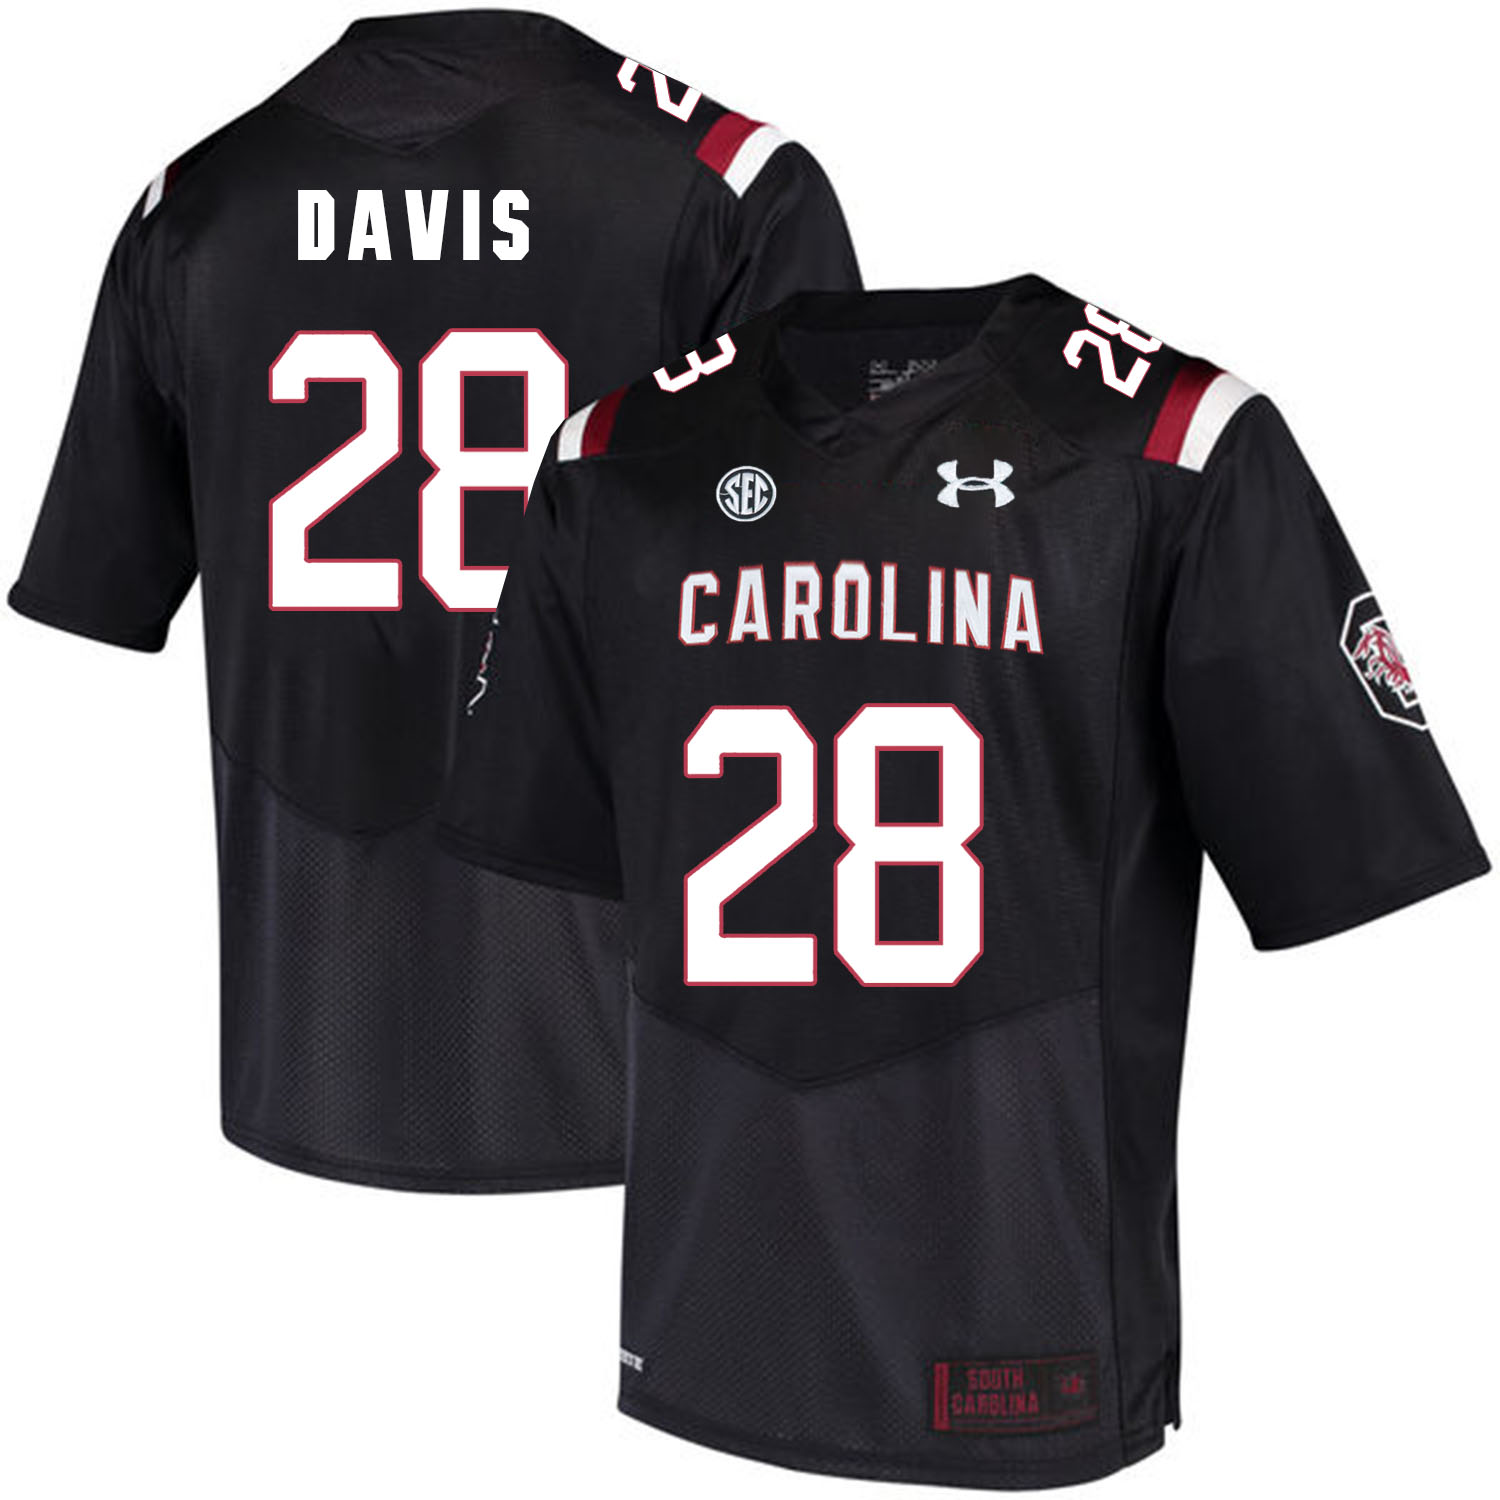 South Carolina Gamecocks 28 Mike Davis Black College Football Jersey